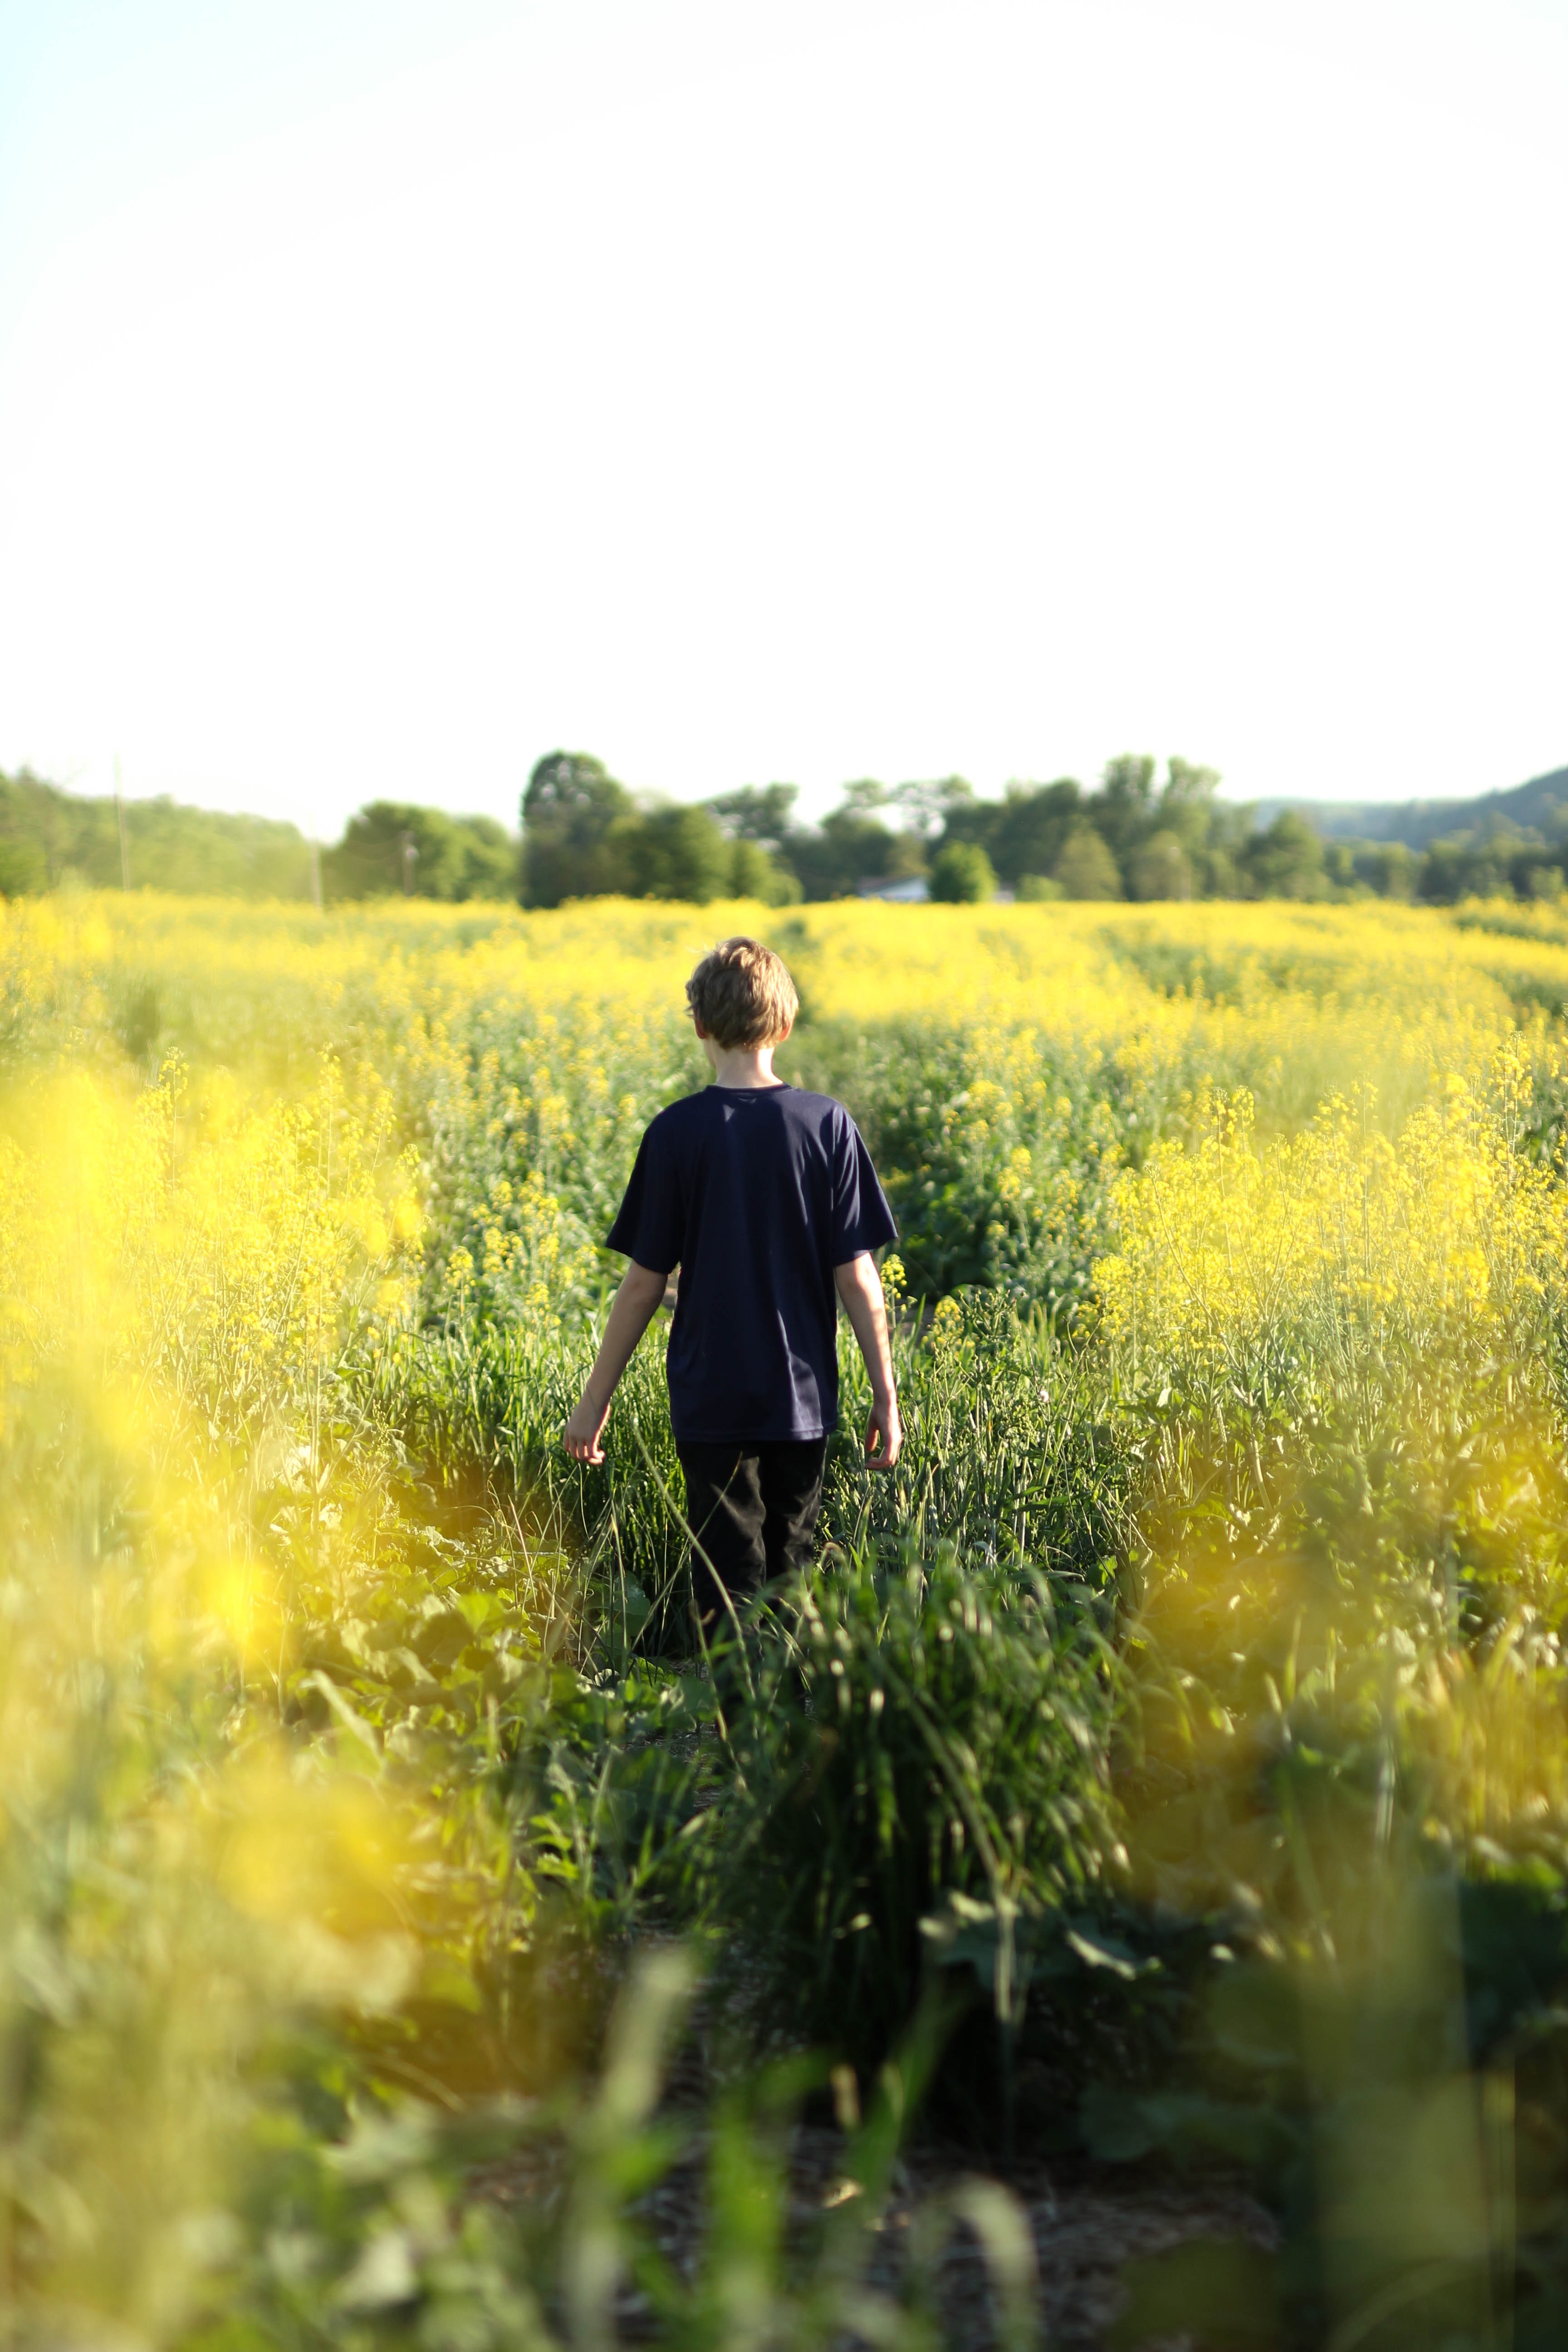 A boy dressed in dark colors stands in a field of yellow flowers in Cleveland.